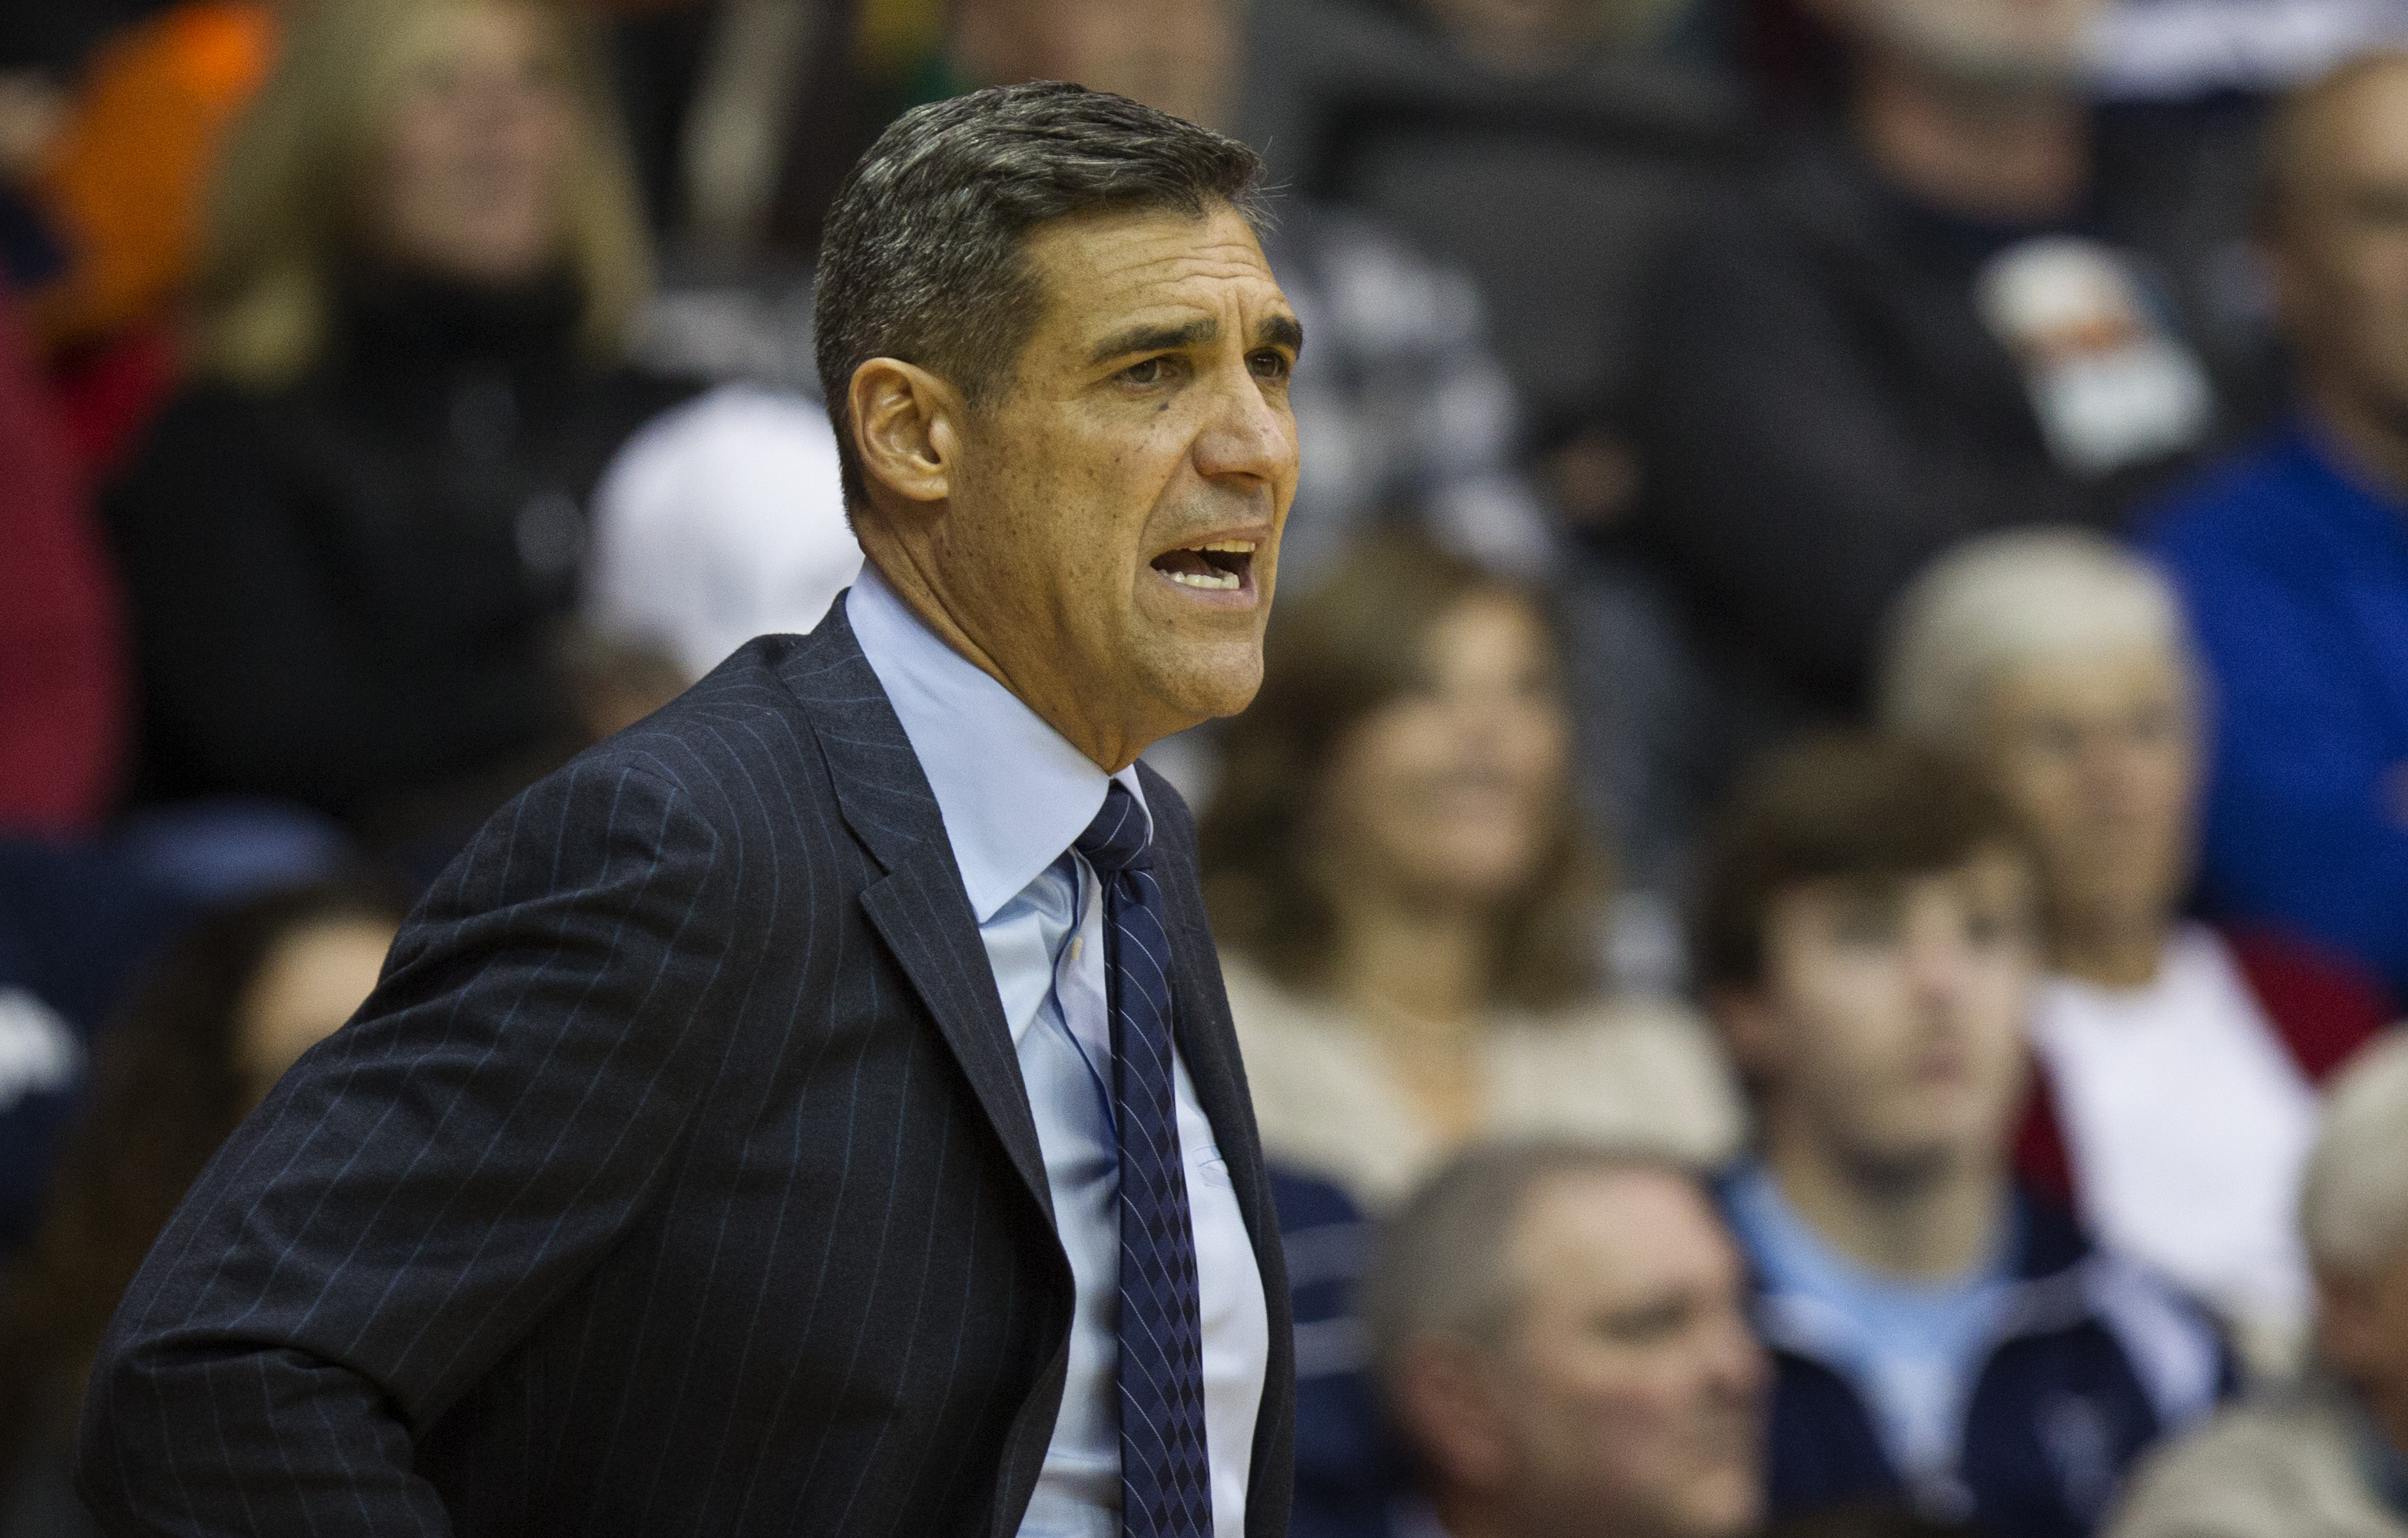 Villanova coach Jay Wright shouts from the bench in the first half of an NCAA college basketball game against Fairleigh Dickinson, Friday, Nov. 13, 2015, in Villanova, Pa.  (AP Photo/Laurence Kesterson)